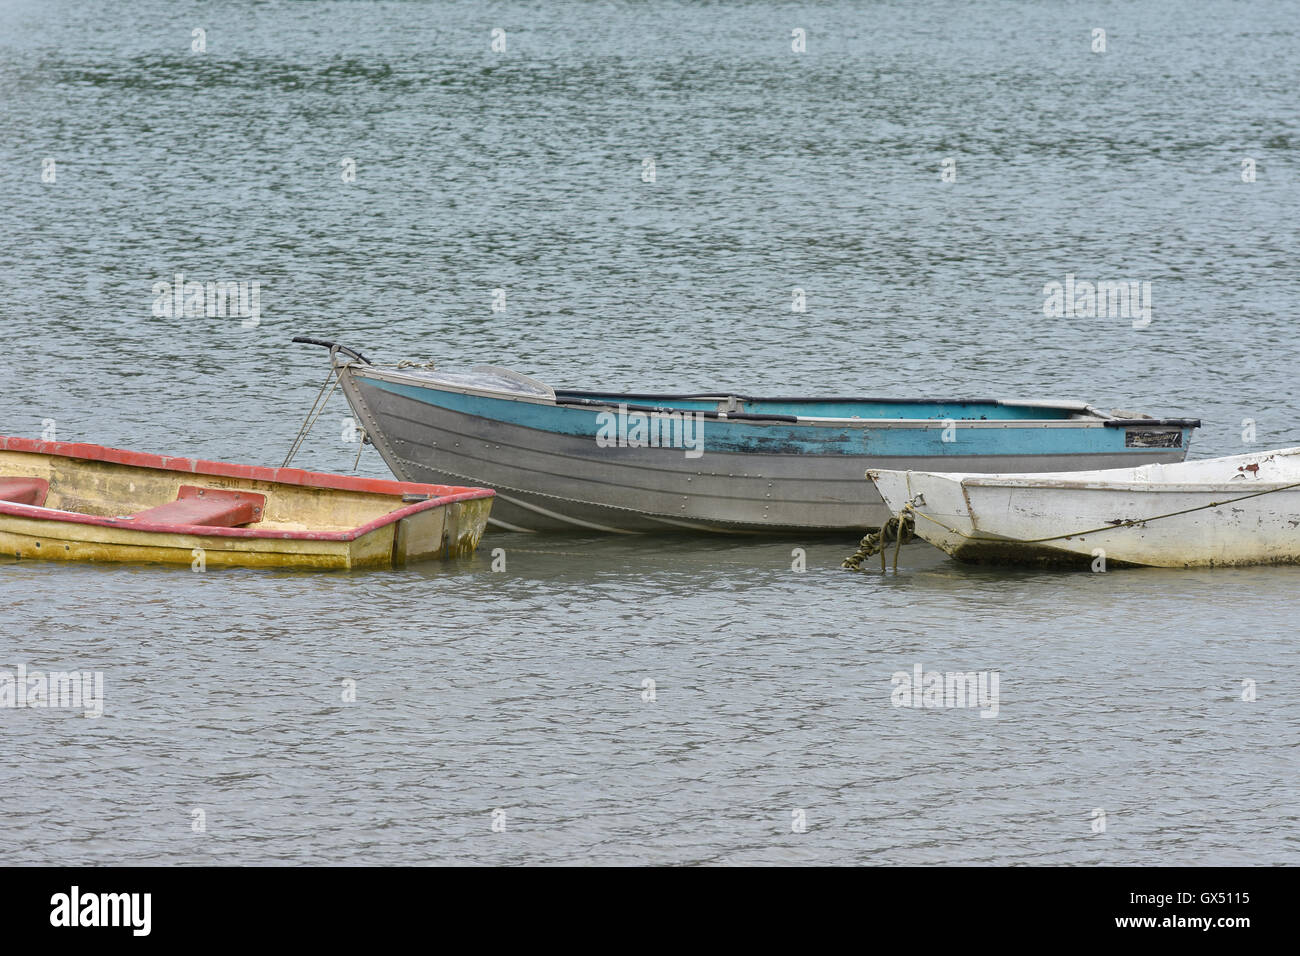 Worn out dinghies on calm water - Stock Image